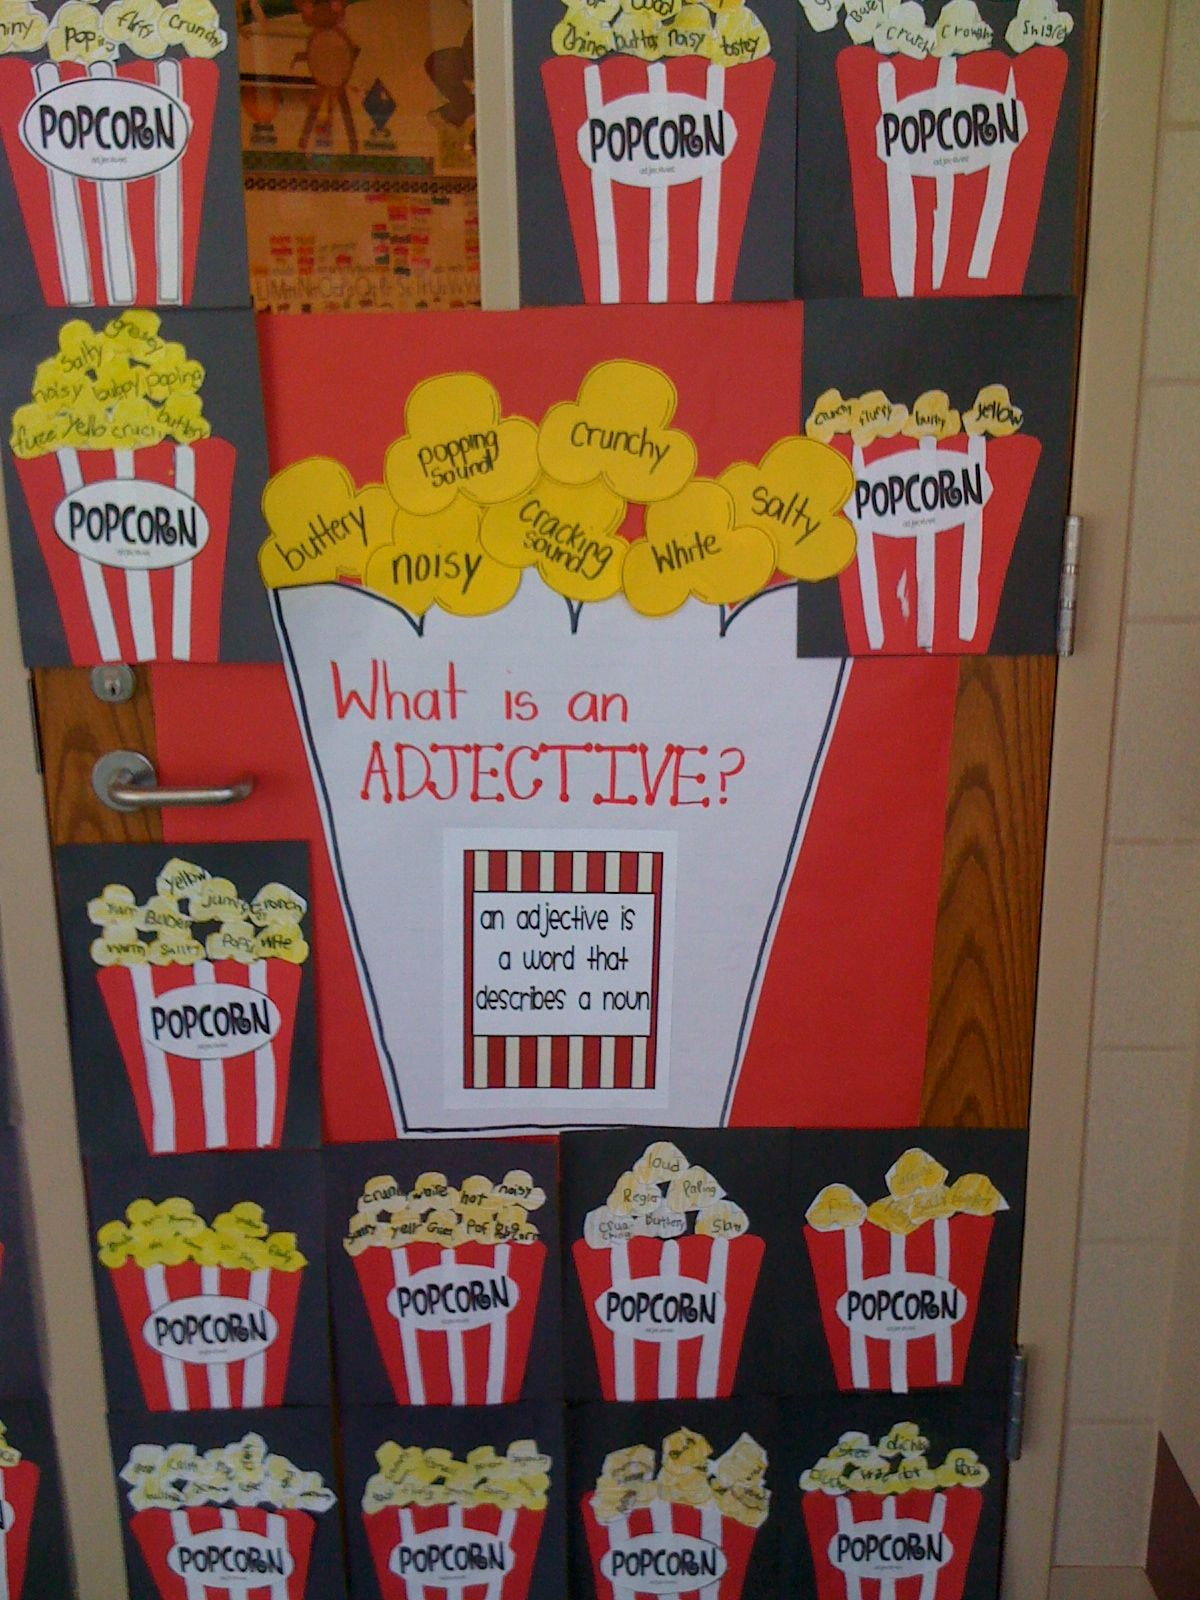 Adjectives Could Label With Different Kinds And Have Students Interact By Putting Into Correct